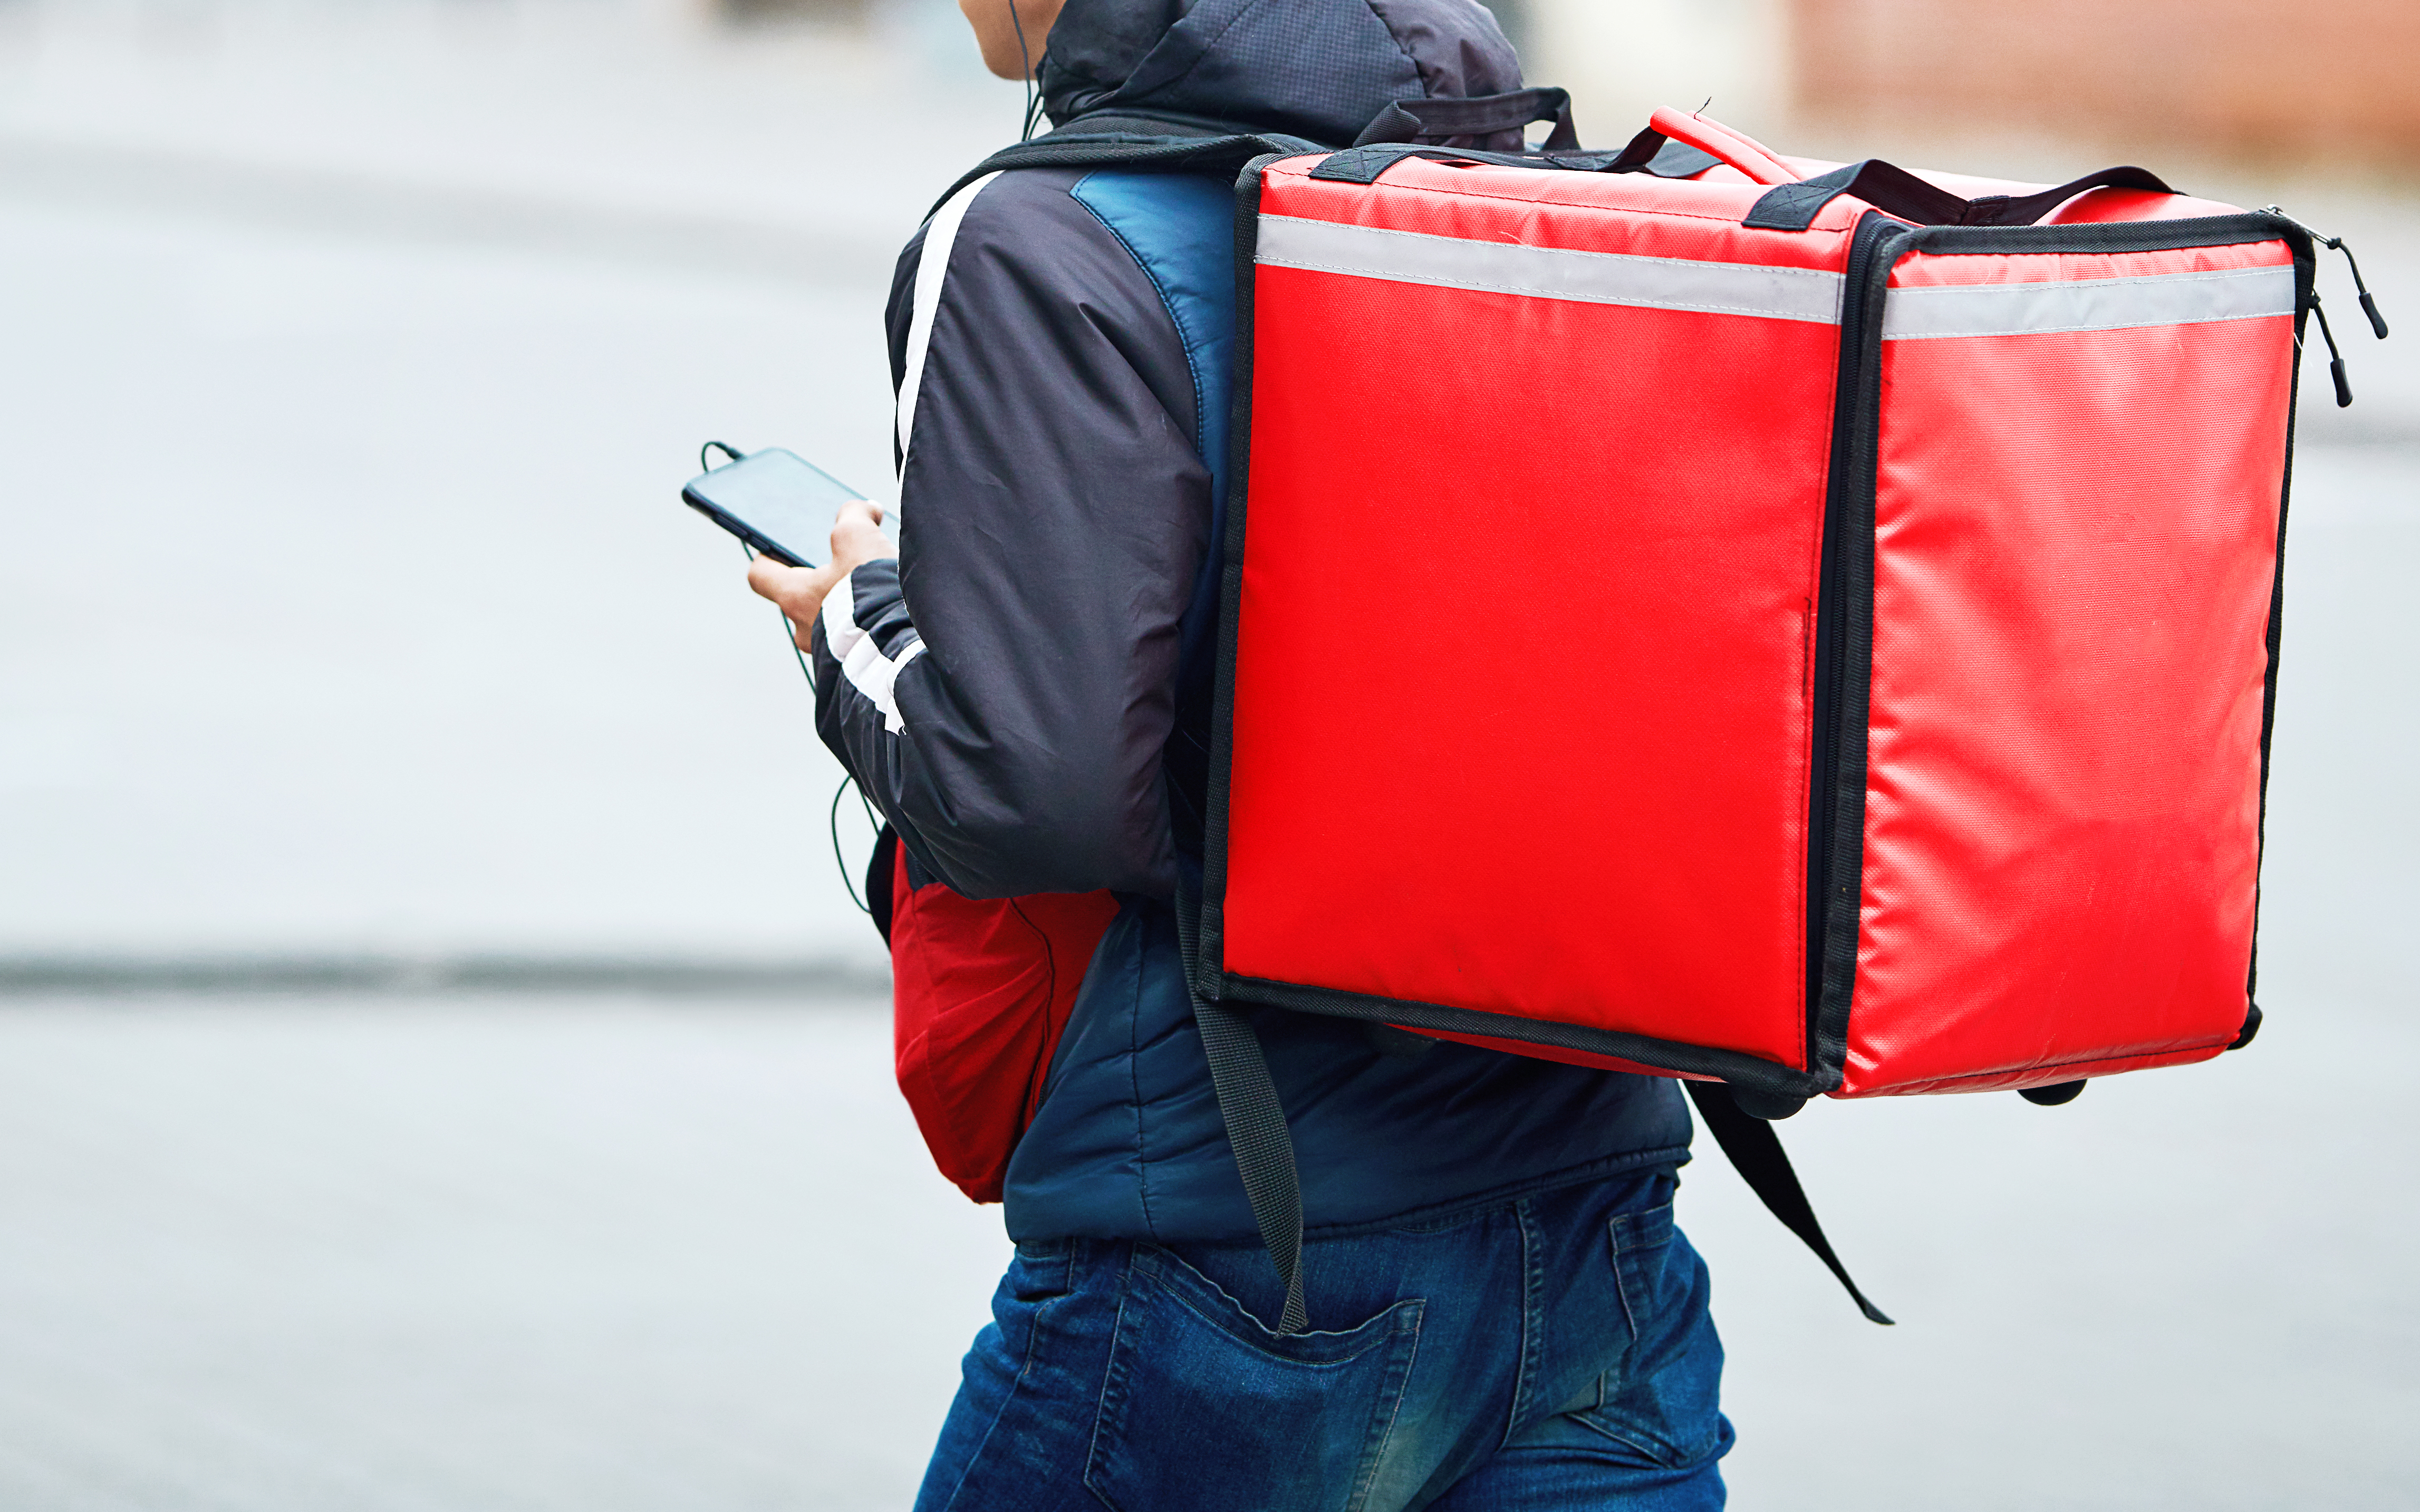 A delivery person stands facing away from the camera, holding a phone and wearing a big red padded delivery backpack.